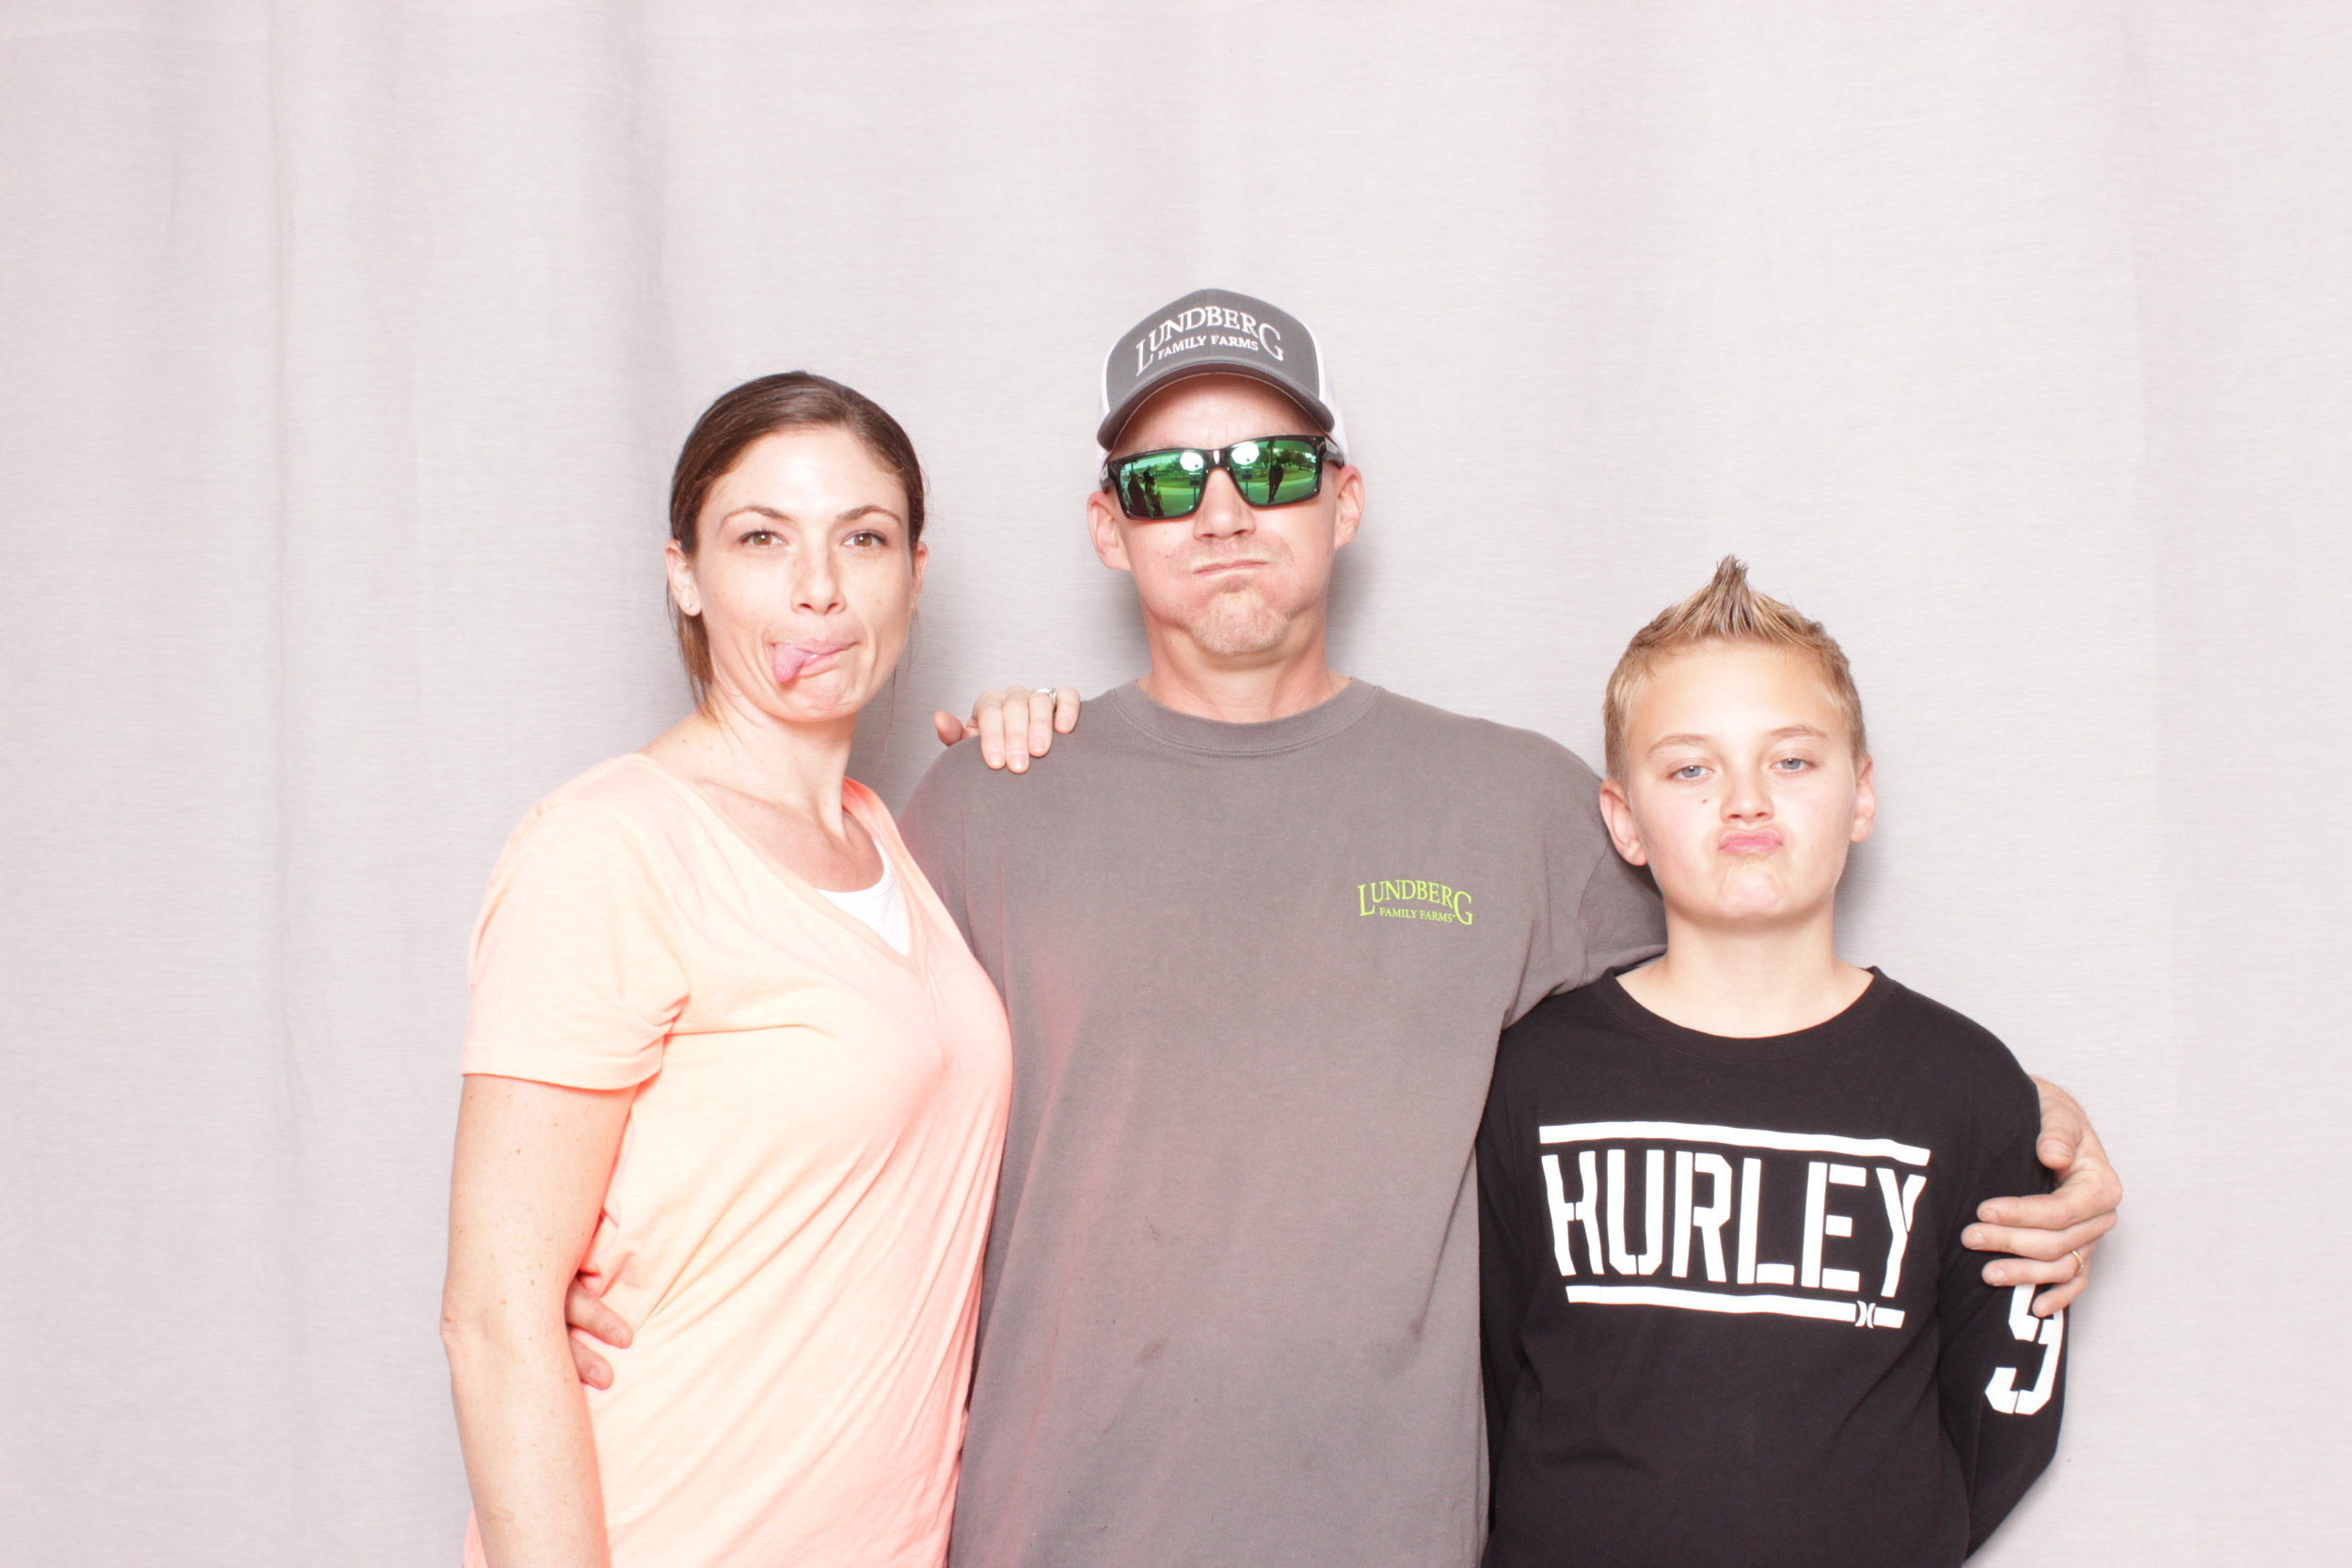 Chico-photo-booth-rental-local-and-ready